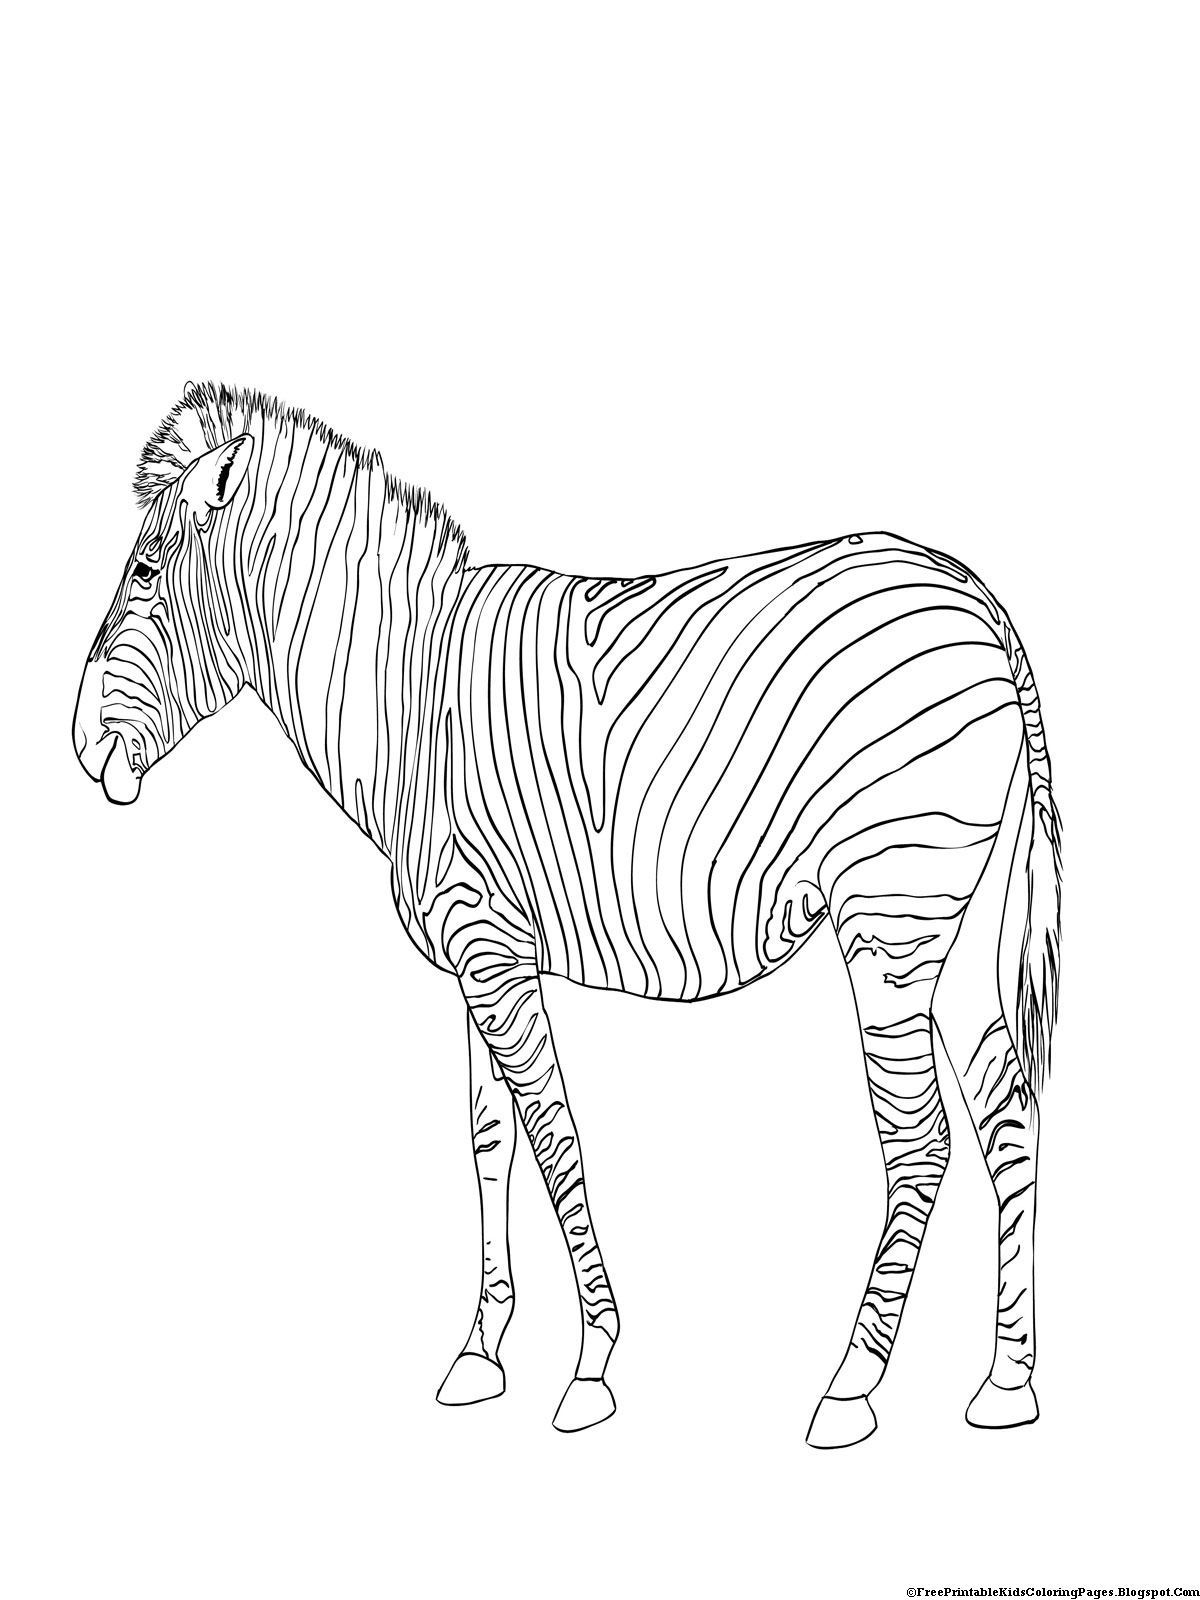 coloring pages printable free zebra coloring pages free printable kids coloring pages coloring pages printable free